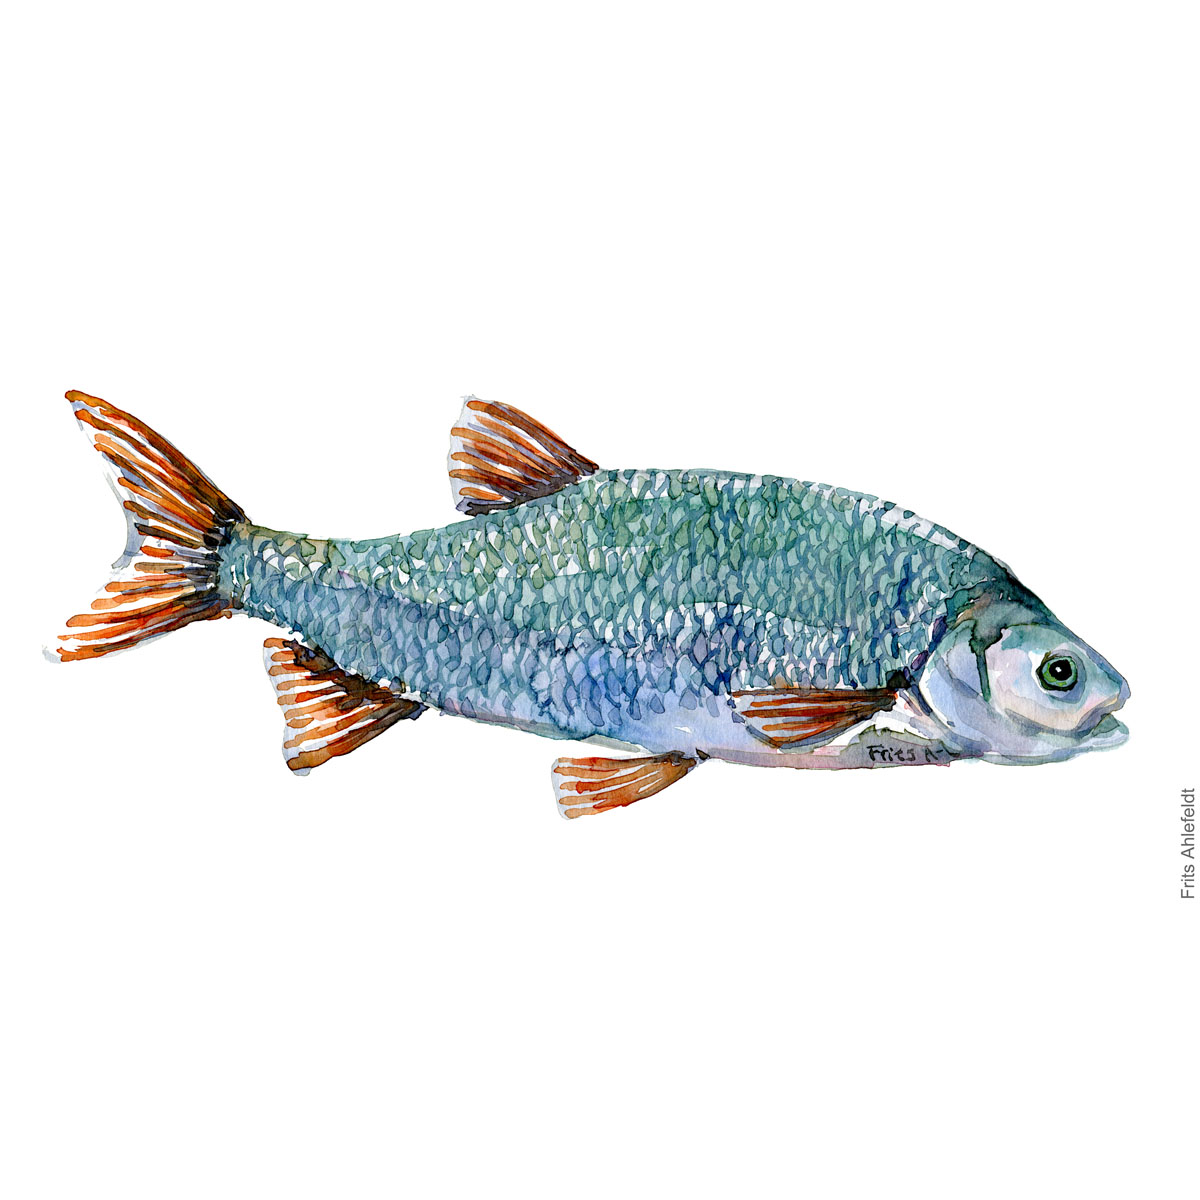 Ide Fish watercolor illustration by frits Ahlefeldt